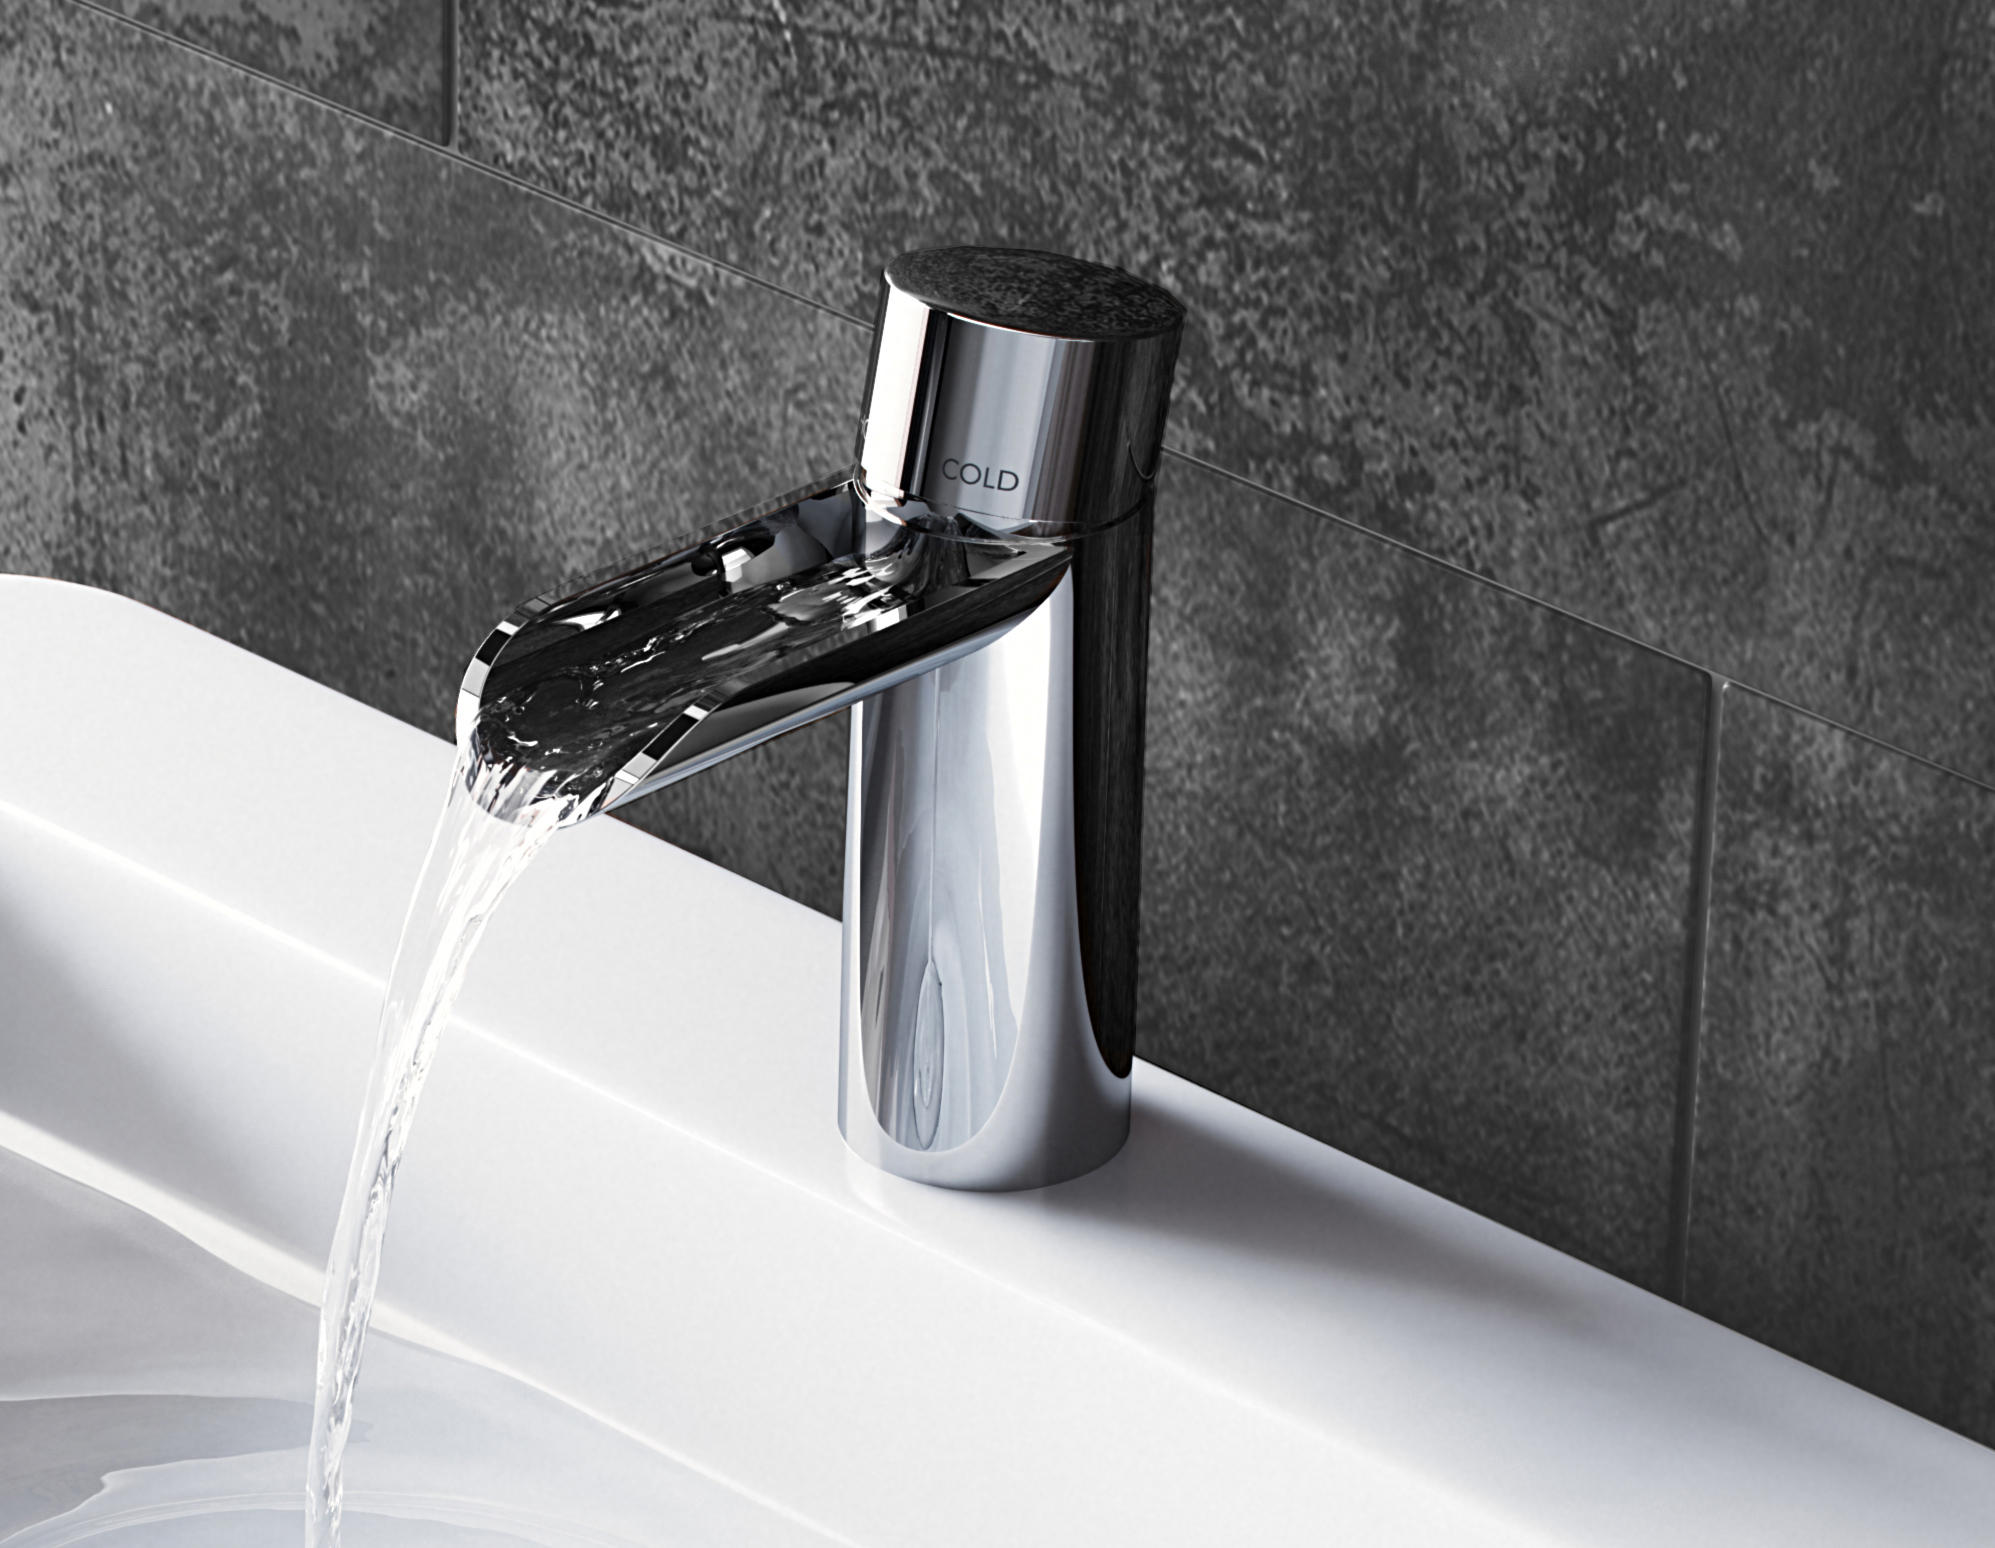 Bagnodesign Princess Nouveau Cascade Mono Basin Mixer Wash Basin Taps From Bagnodesign